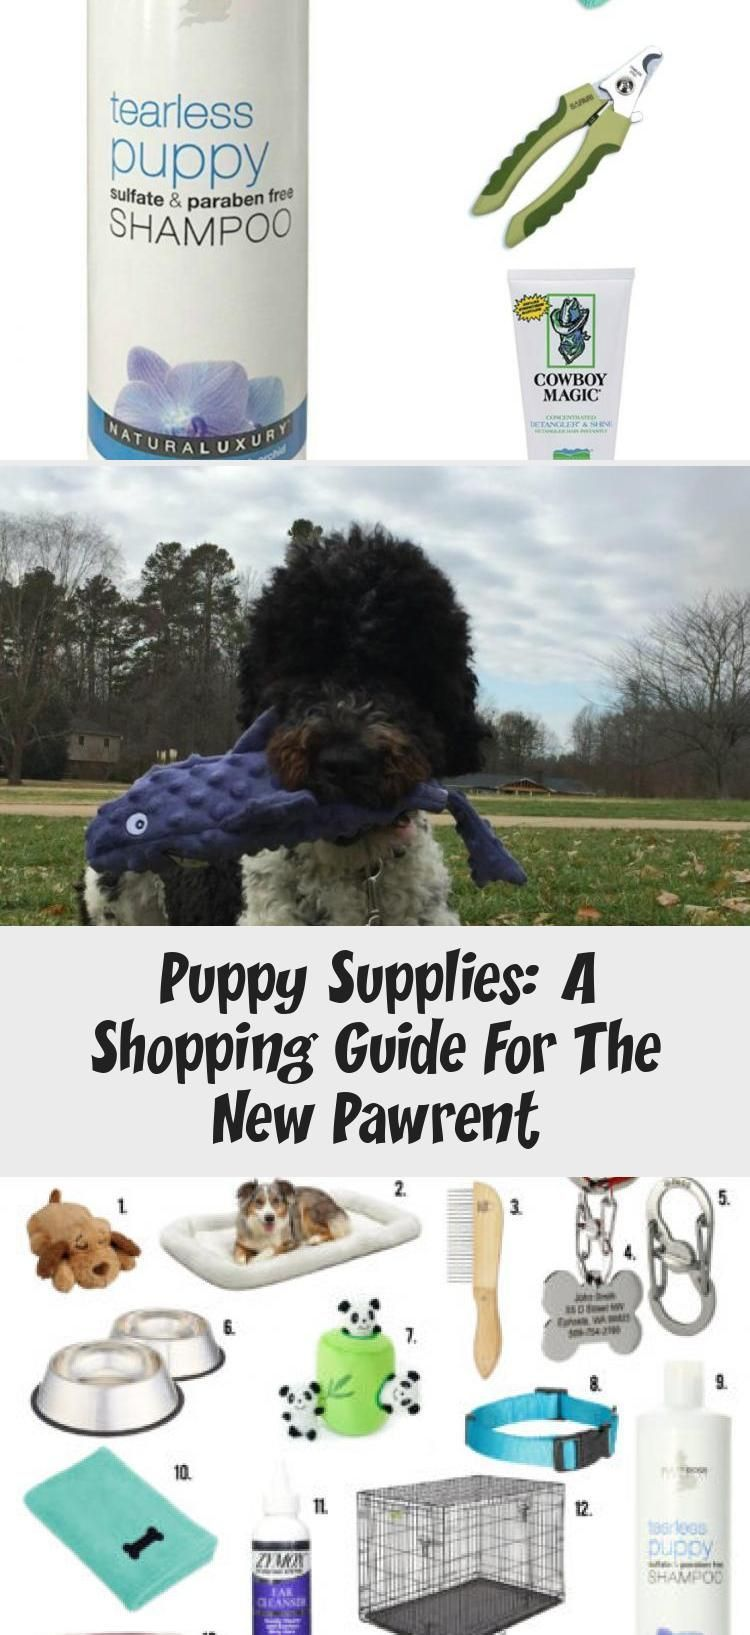 puppy supplies: a shopping guide for new pawrents - www.saunderssays.com #Animal... #Animal #guide #pawrents #puppy #shopping #Supplies #wwwsaunderssayscom